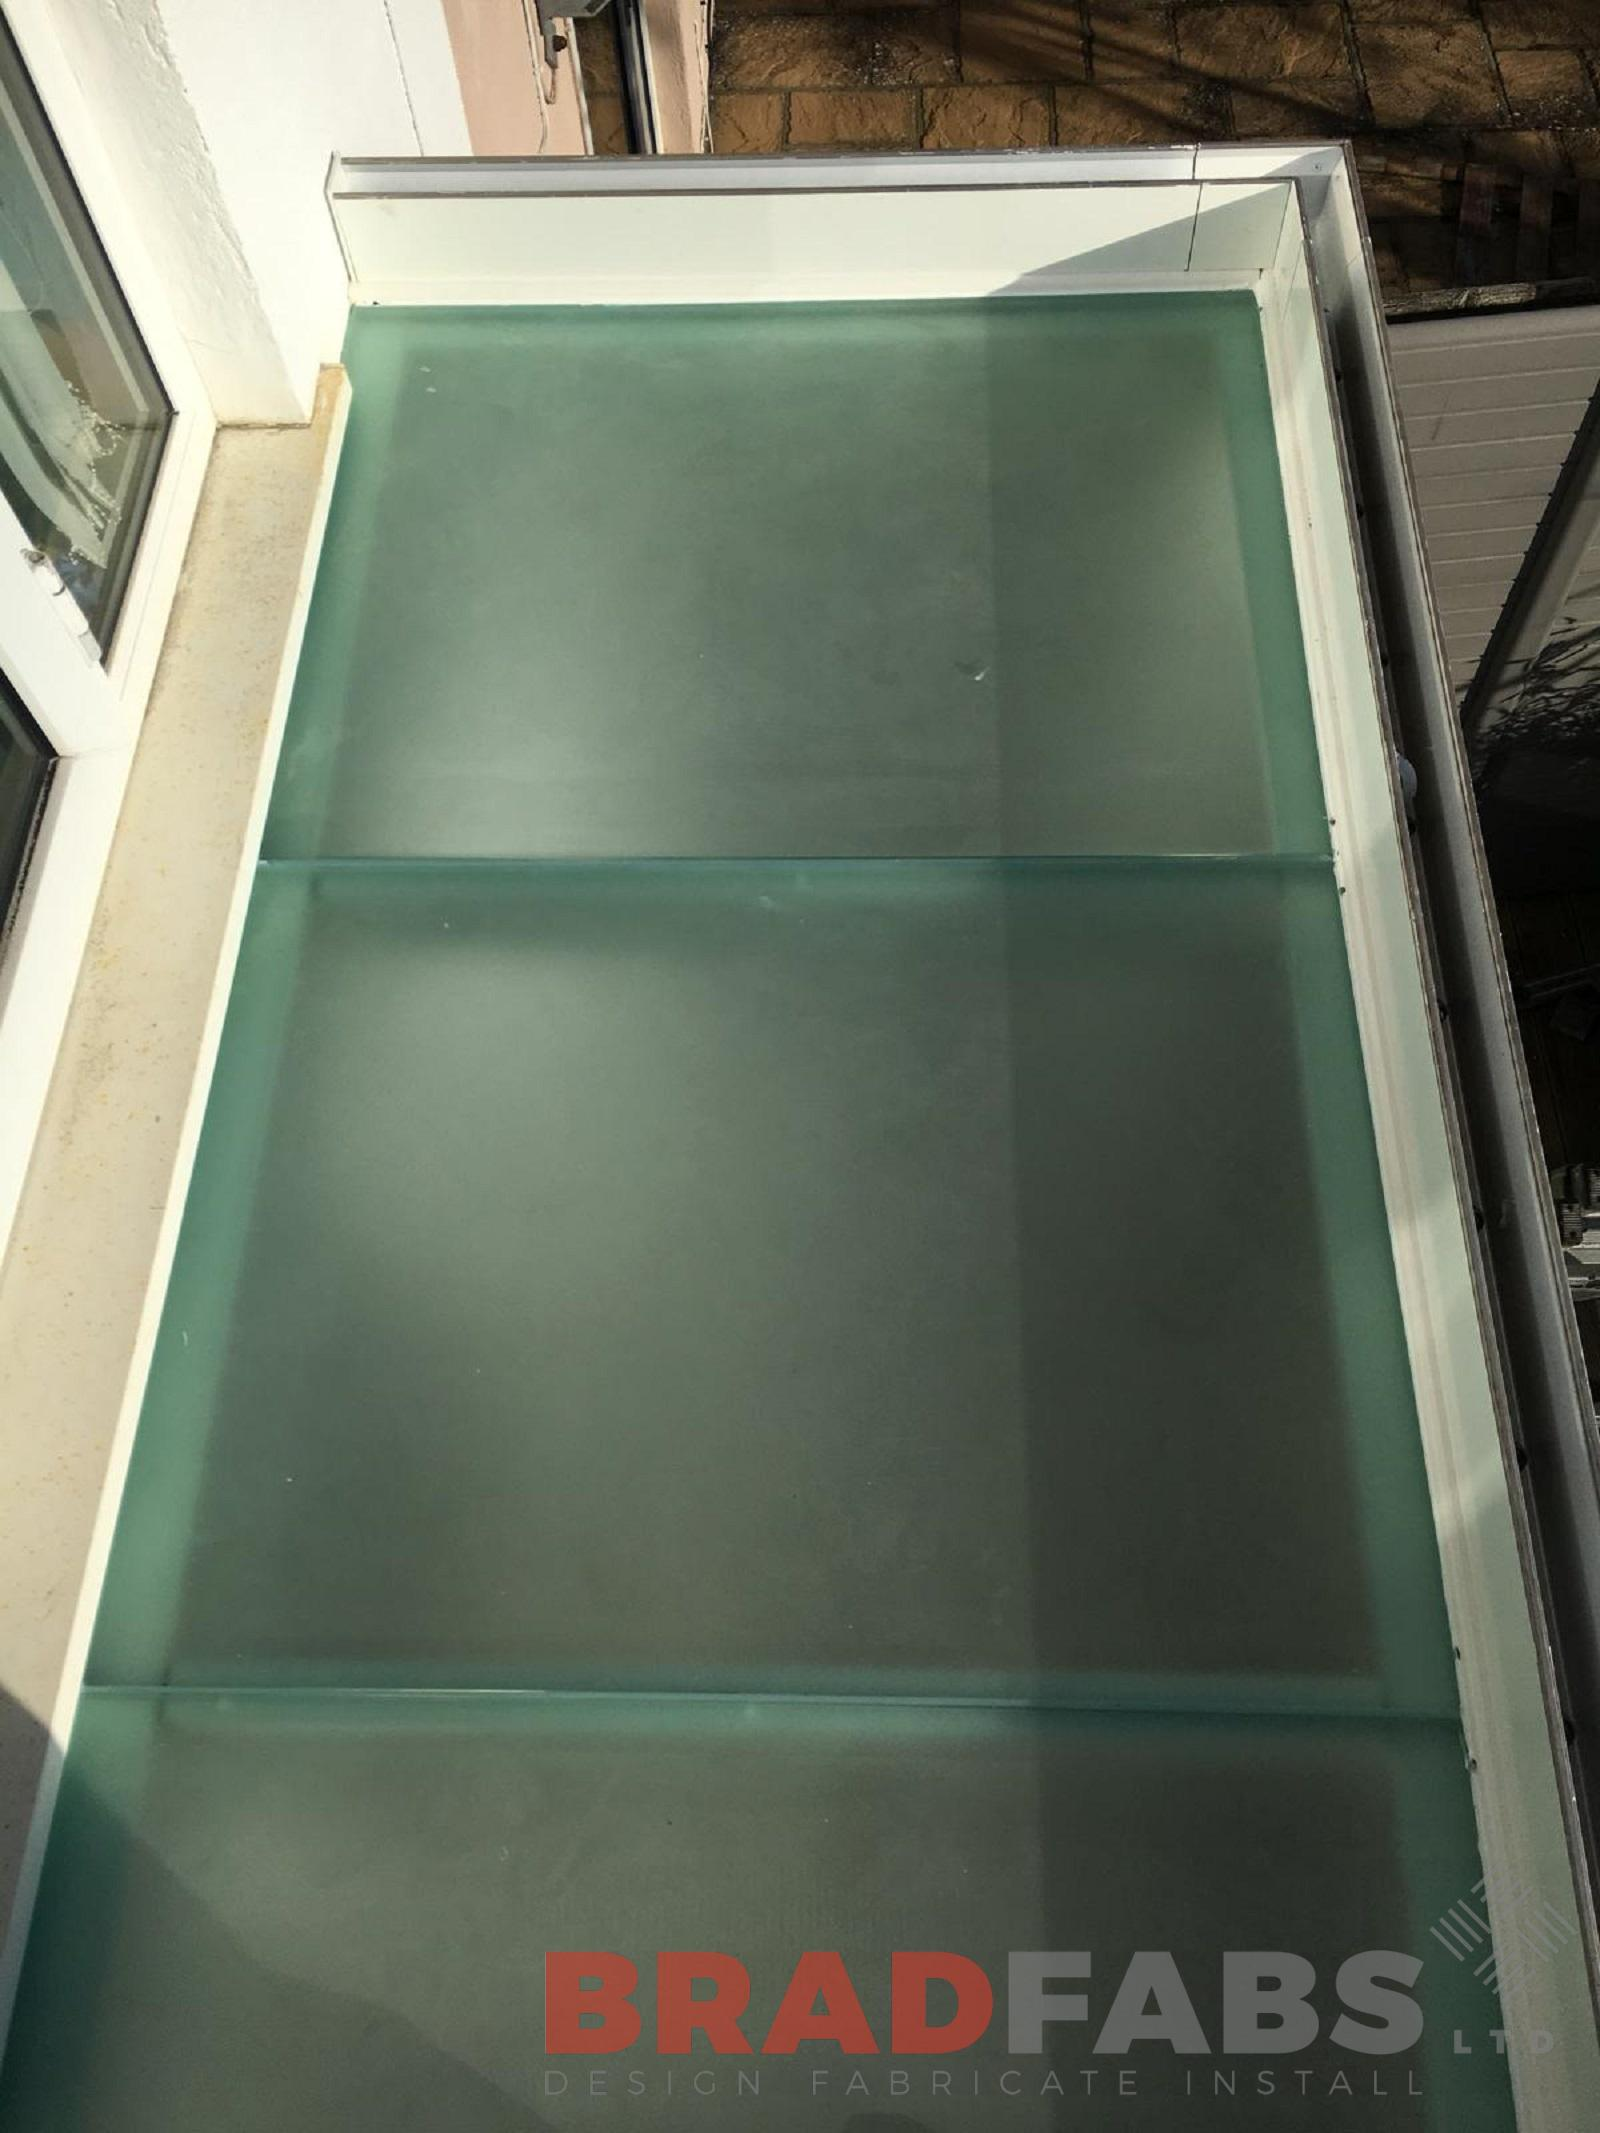 Glass Floor balcony manufactured by Bradfabs